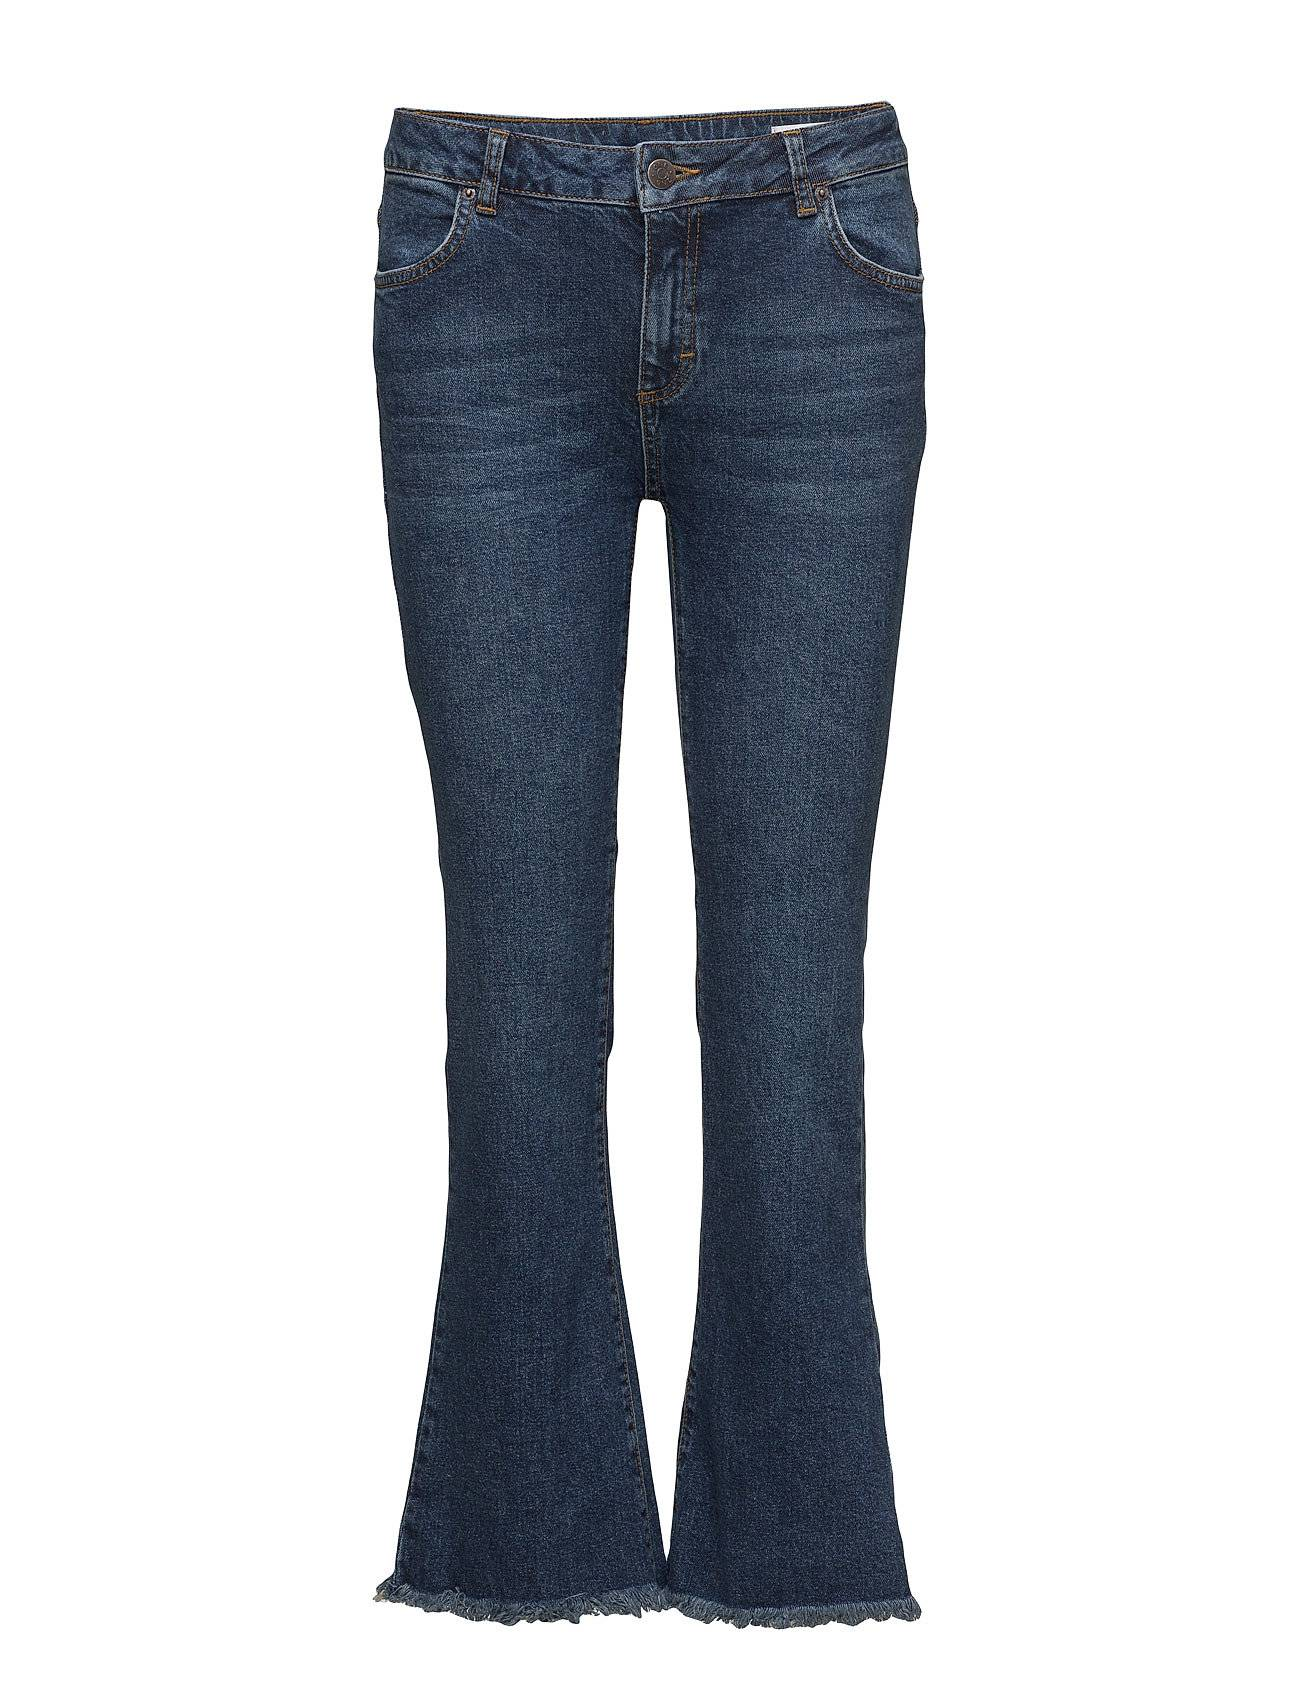 2nd One Janelle 864 Blue Mount, Jeans